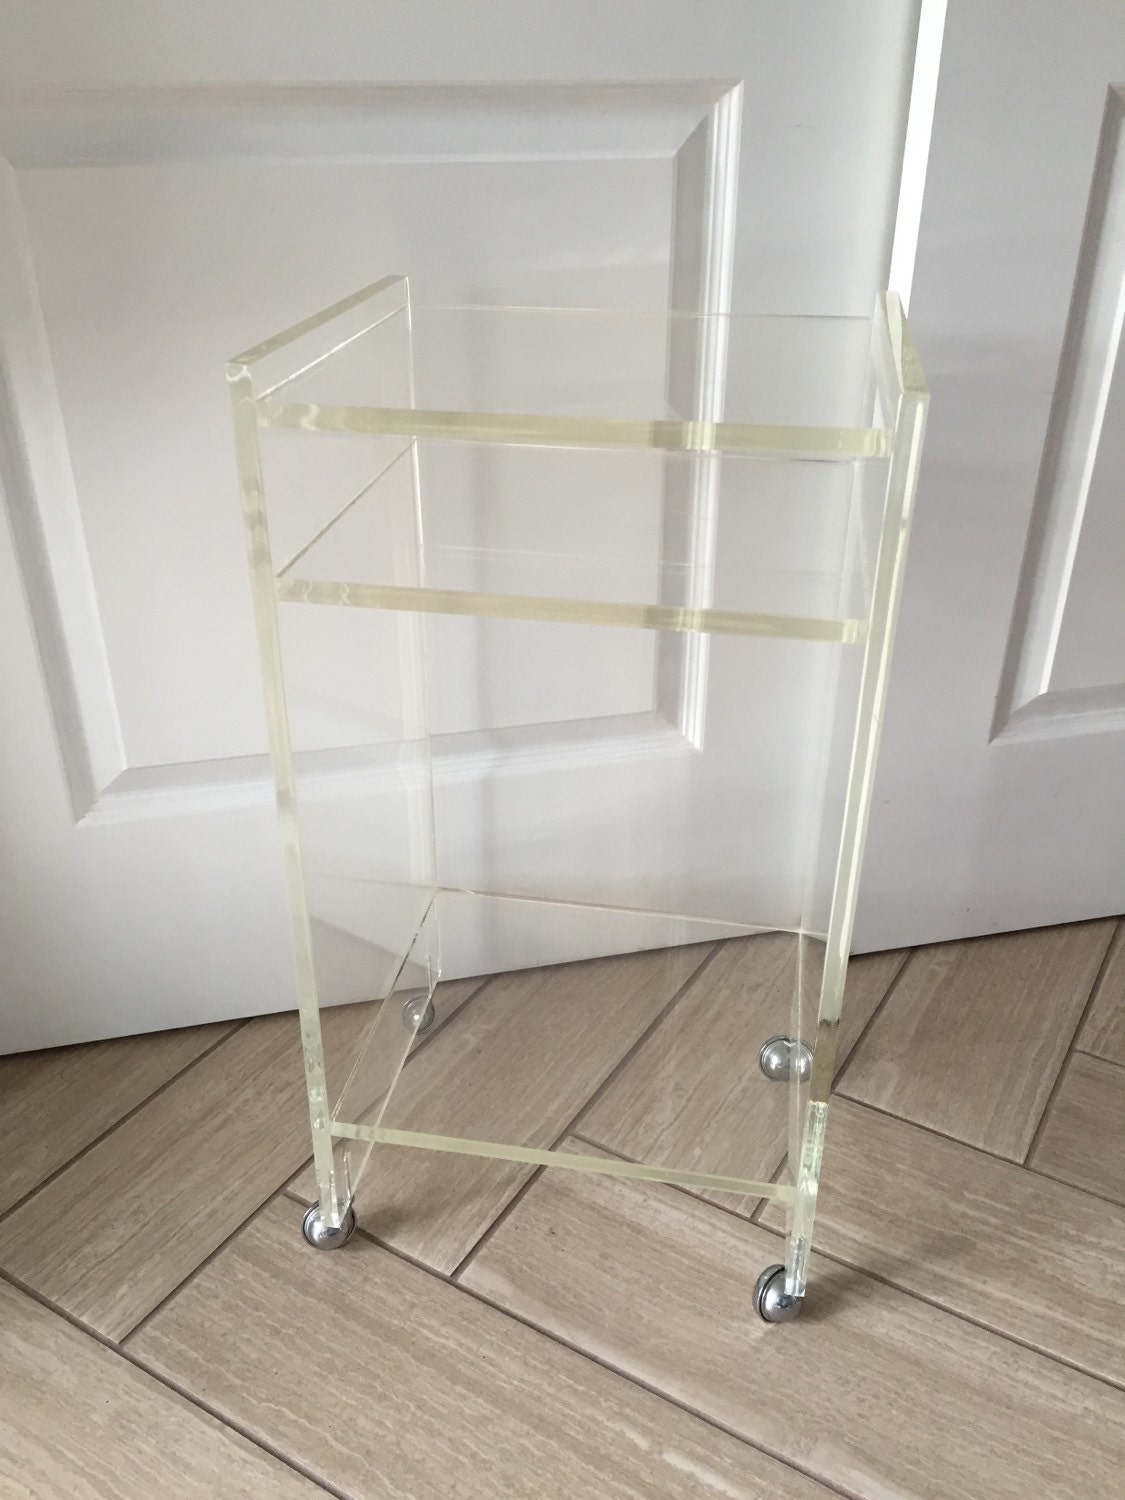 acrylic side table with wheels ca designs peek acrylic coffee  - vintage lucite side table rolling night stand small clear acrylic nightstandon wheels s furniture glam hollywood regency cart